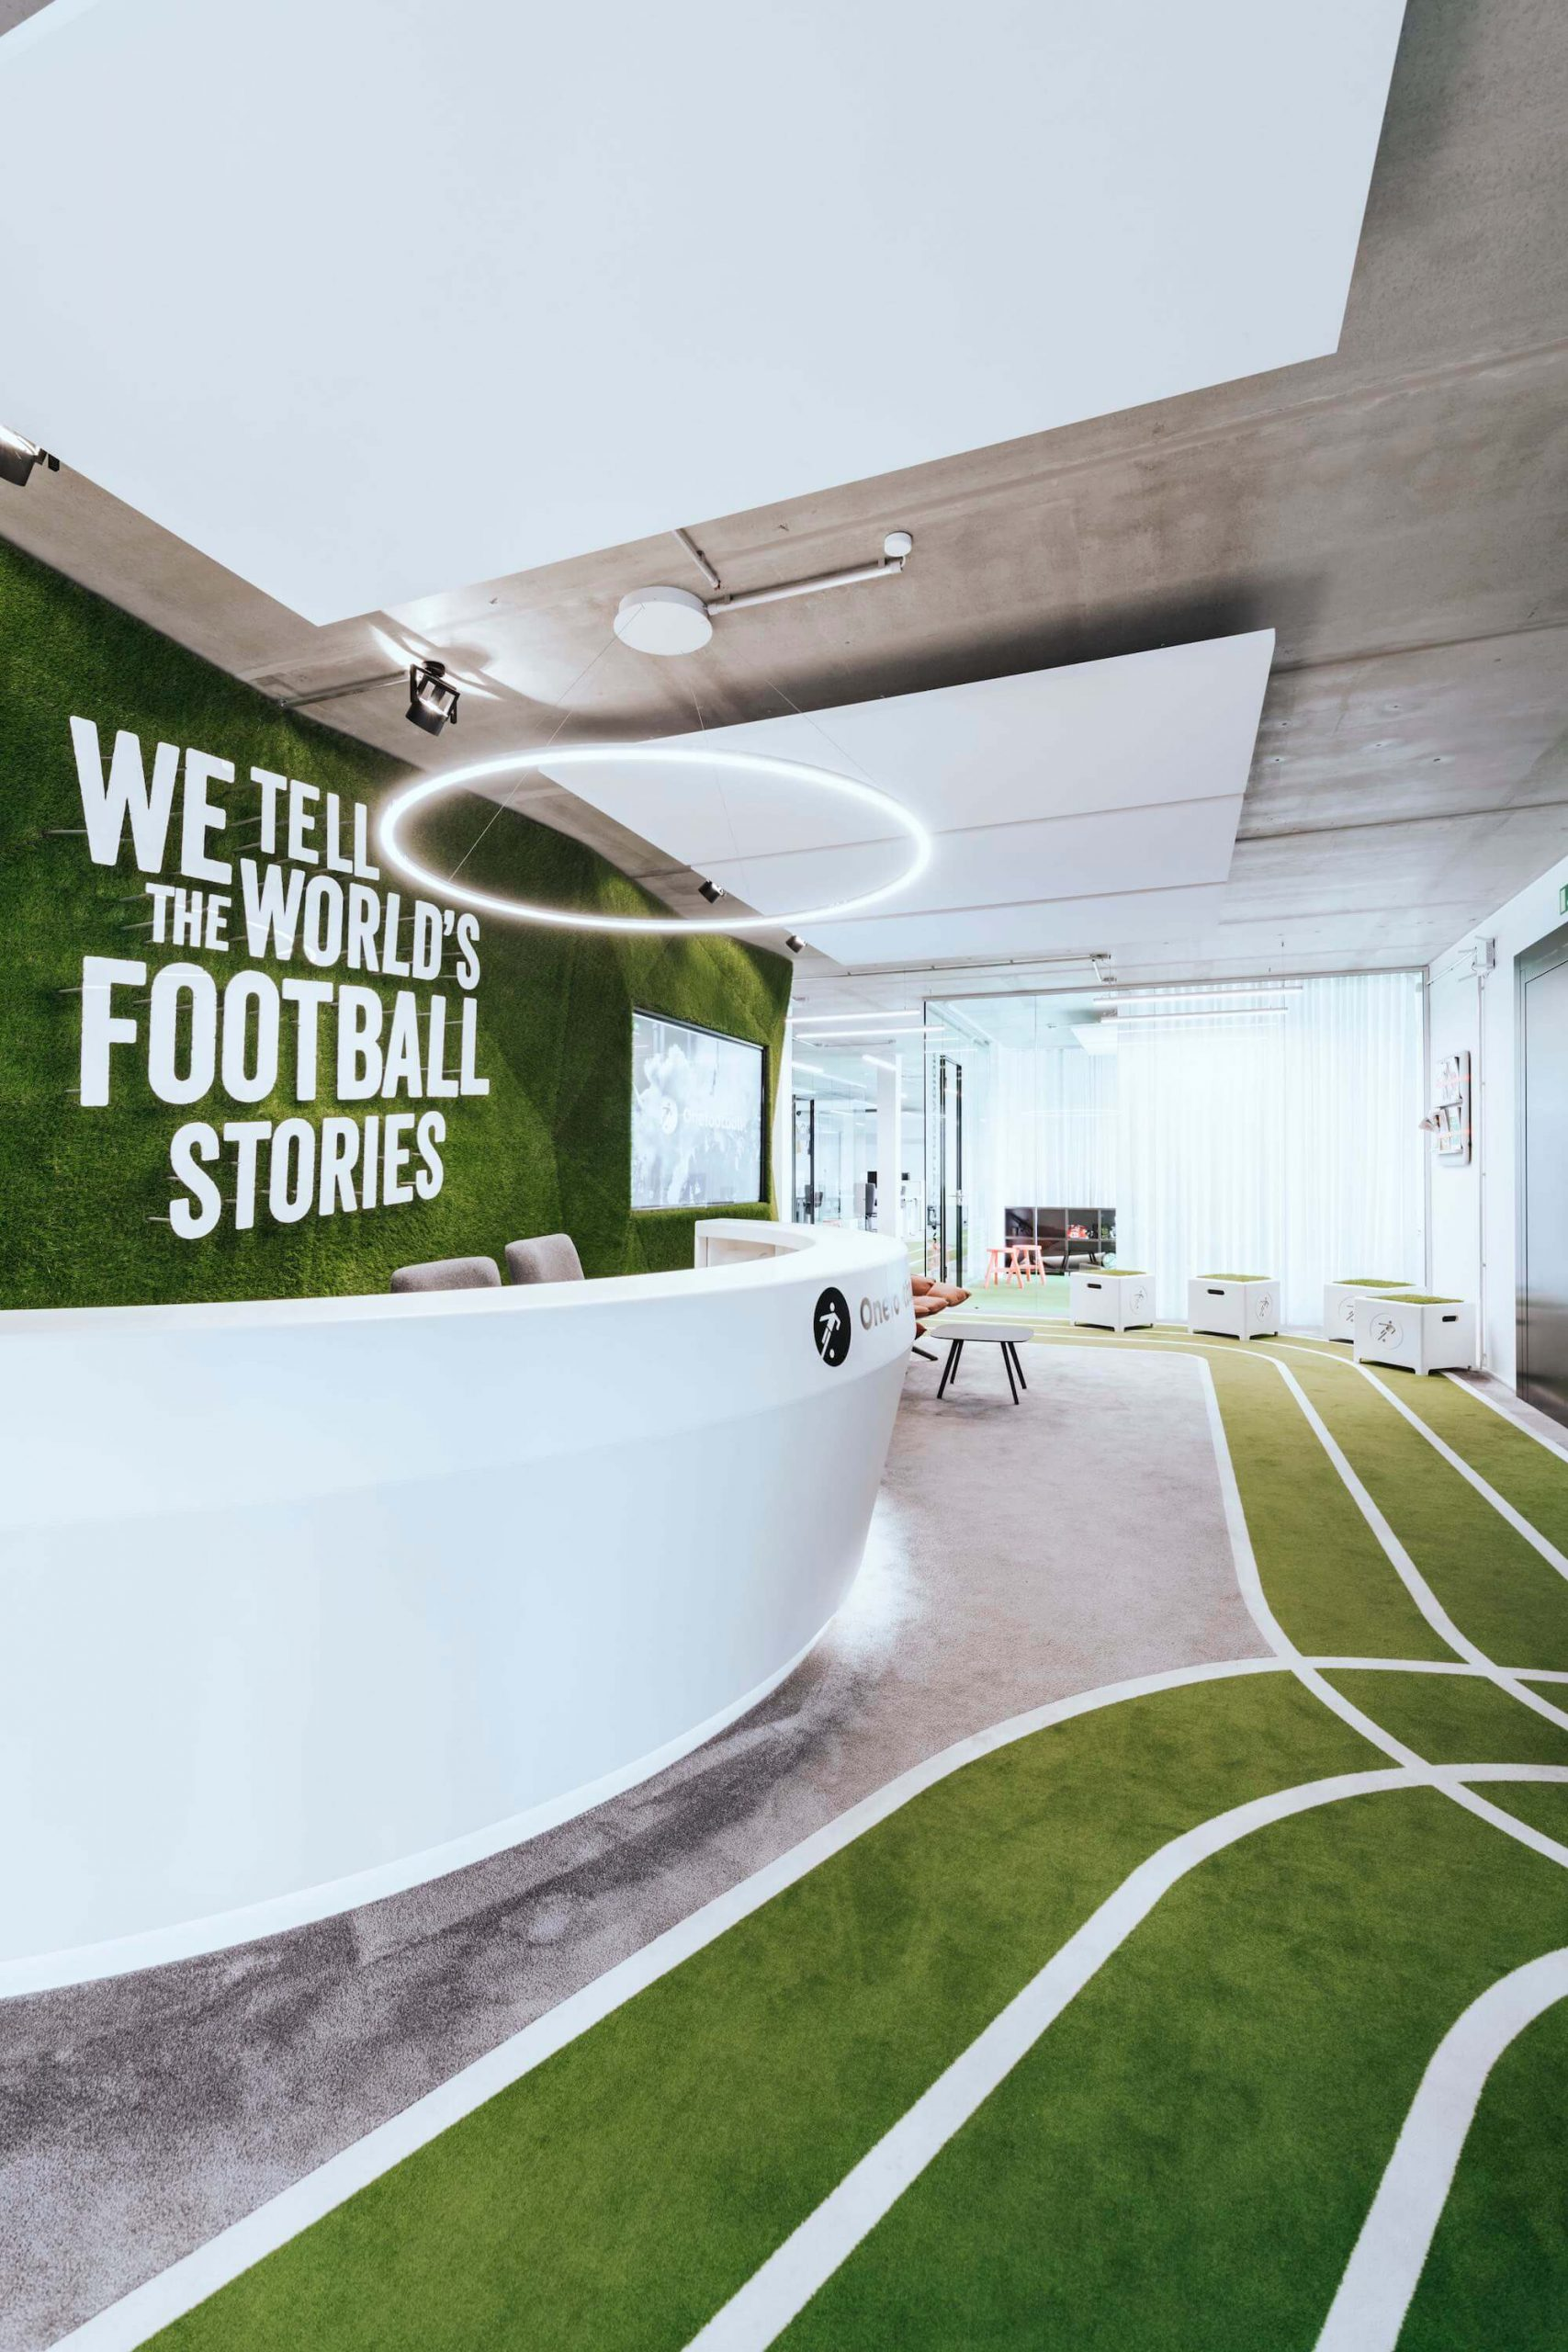 Onefootball Startup Büro TKEZ Architekten Empfang Football Stories